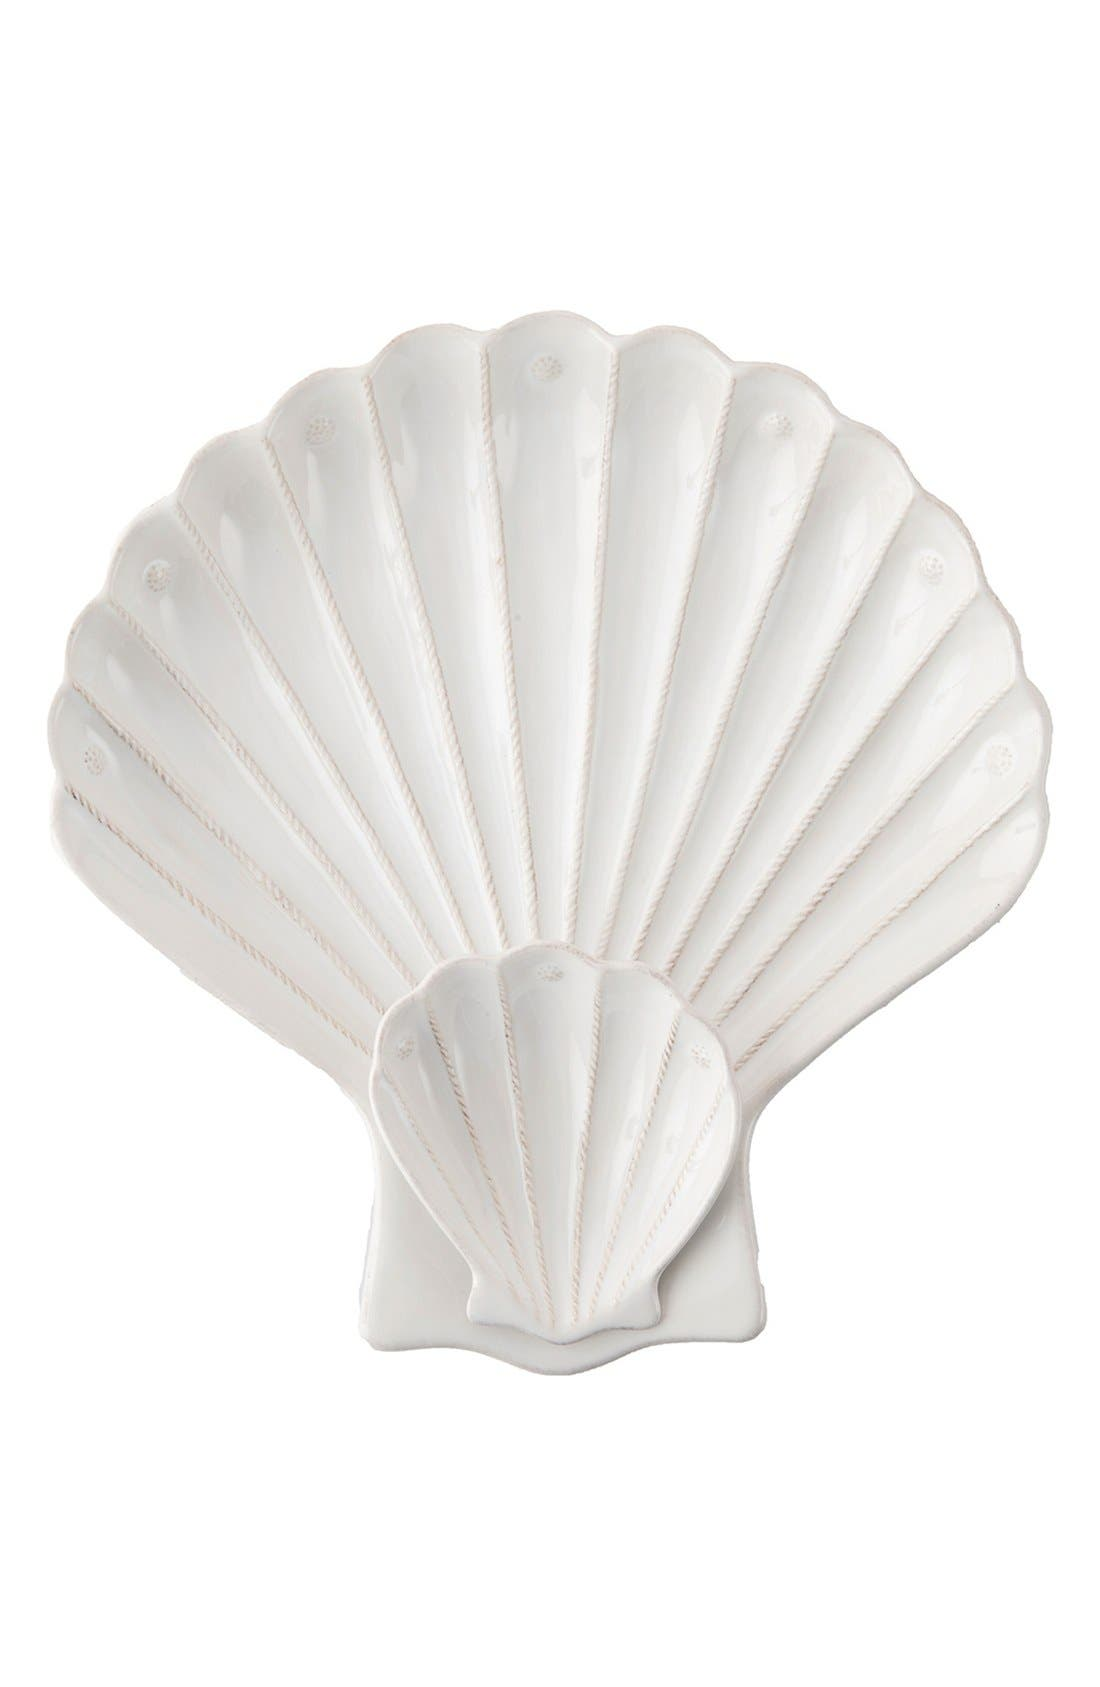 'Berry and Thread' Shell Appetizer Serving Plate,                         Main,                         color, White